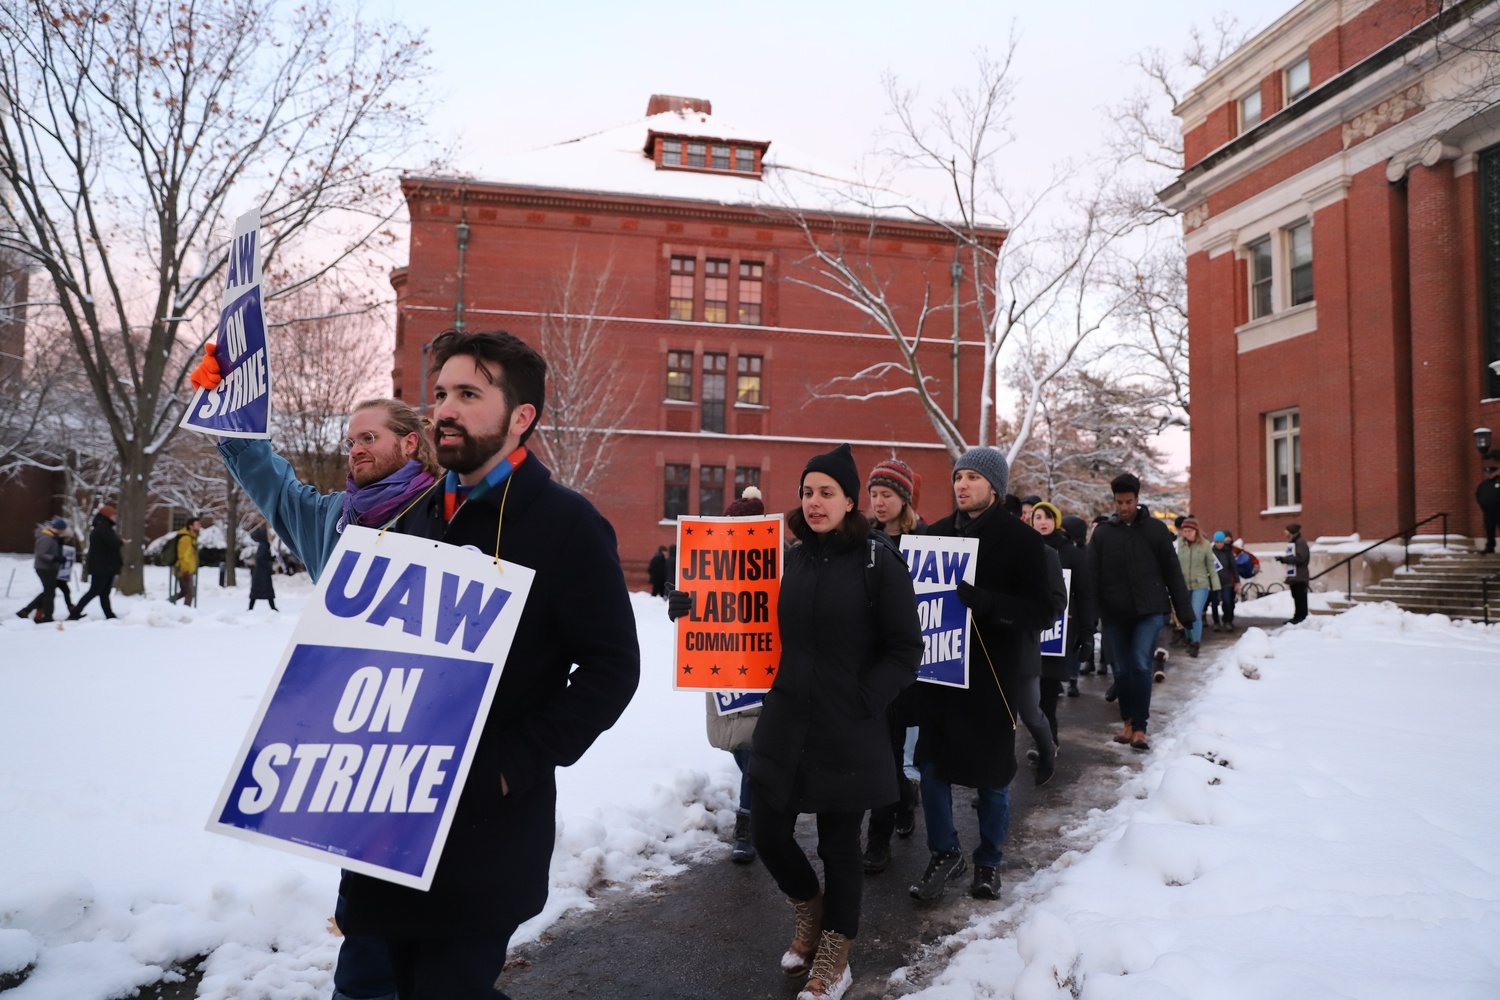 Demonstrators concluded the night protesting a faculty meeting in Emerson Hall. Demonstrators with the union were joined by Harvard affiliates protesting the University's denial of tenure to professor Lorgia García Peña.